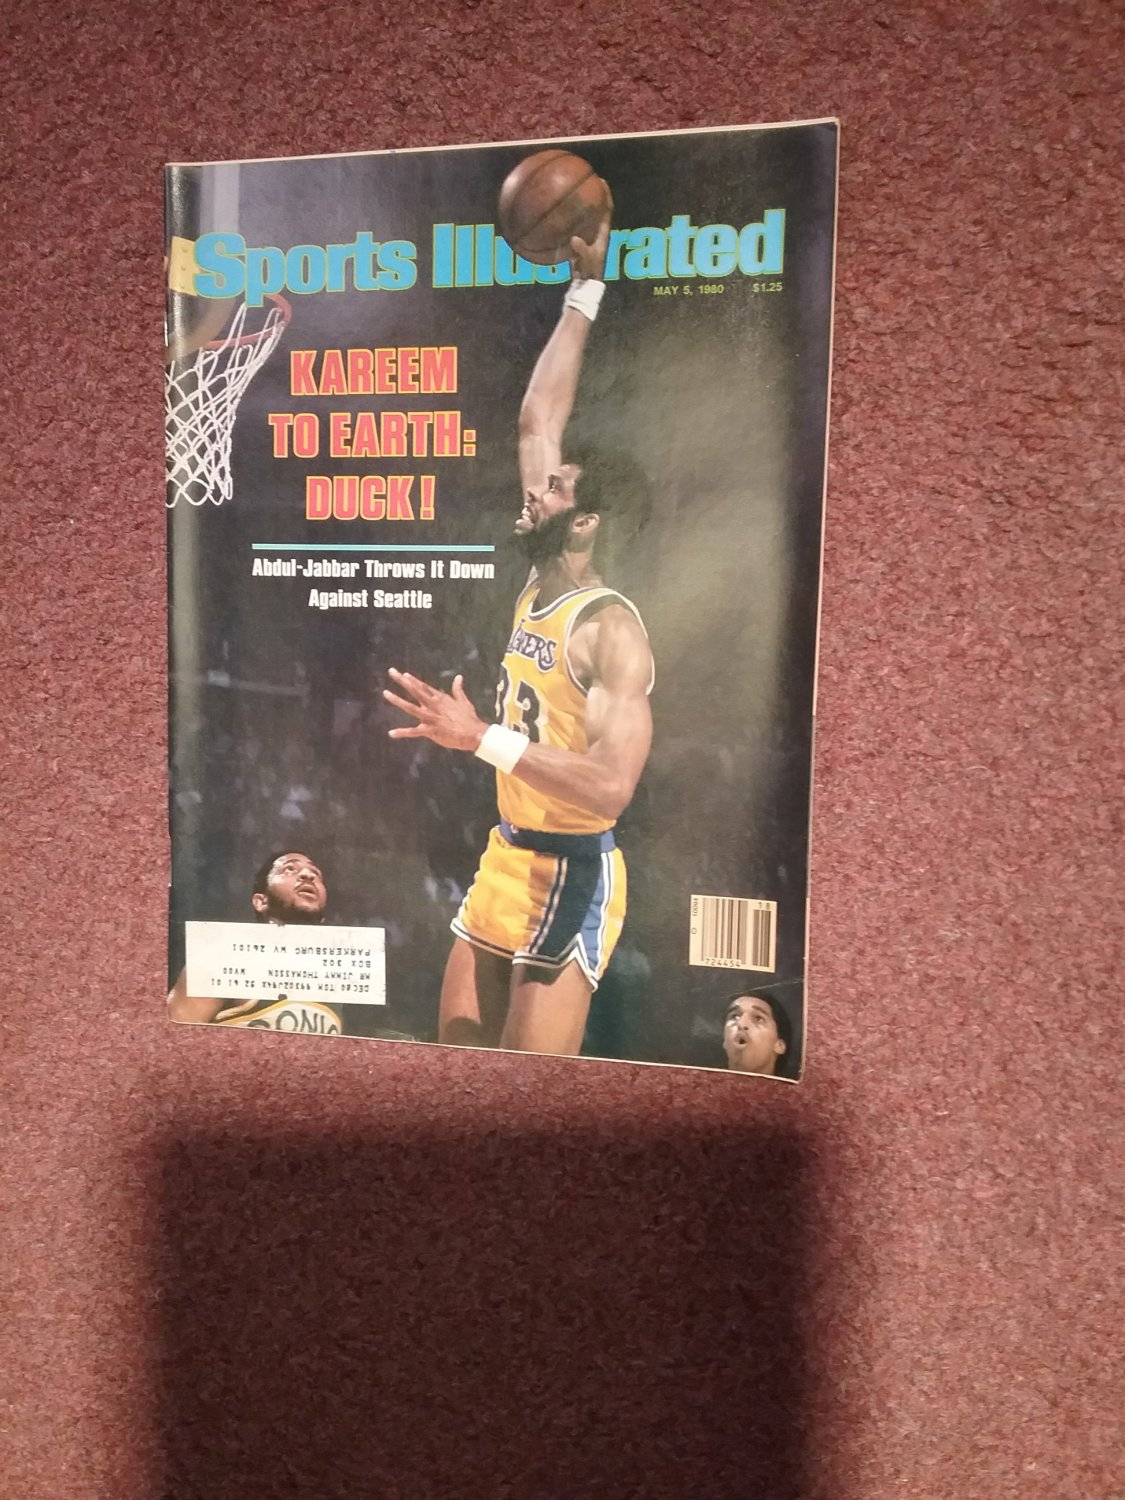 Sports Illustrated Magazine May 5, 1980 Kareem Abdul-Jabbar 0707161147